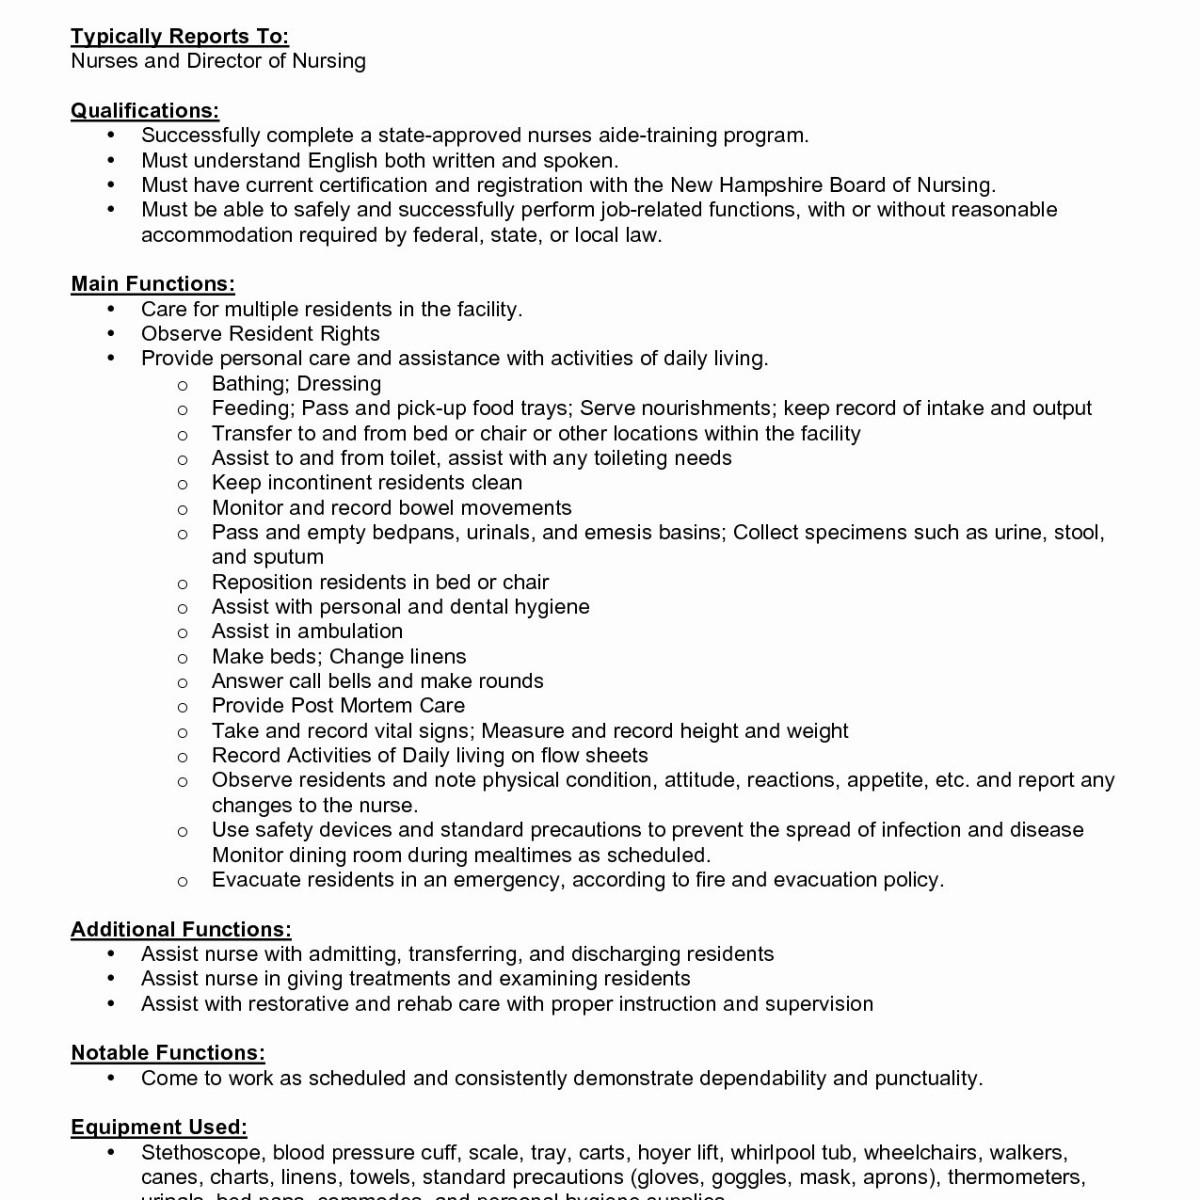 Experienced Rn Resume - Resume for Federal Jobs Inspirational Federal Job Resume New